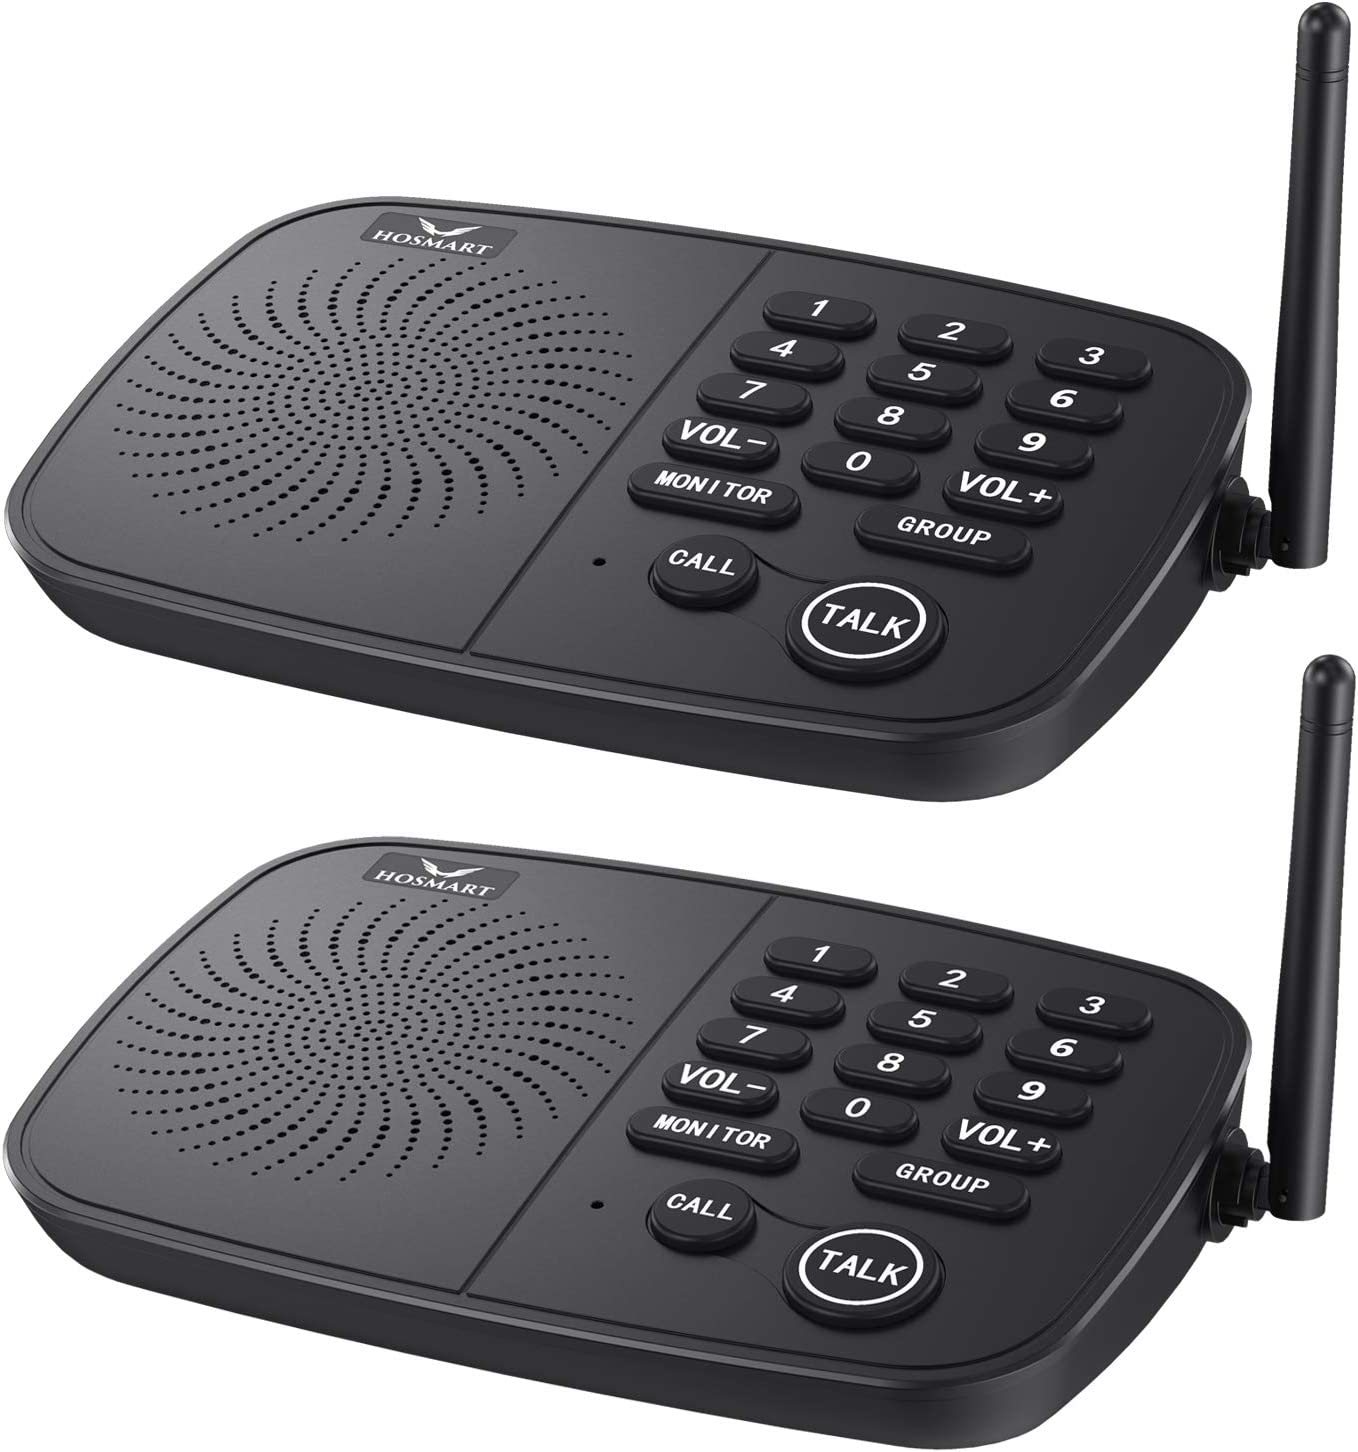 Hosmart 1/2 Mile Range 10-Channel Intercom System for Home or Office, Plug-and-Play Intercom, Easy to Use with Clear Sound, Without Yelling[2 Units Black]